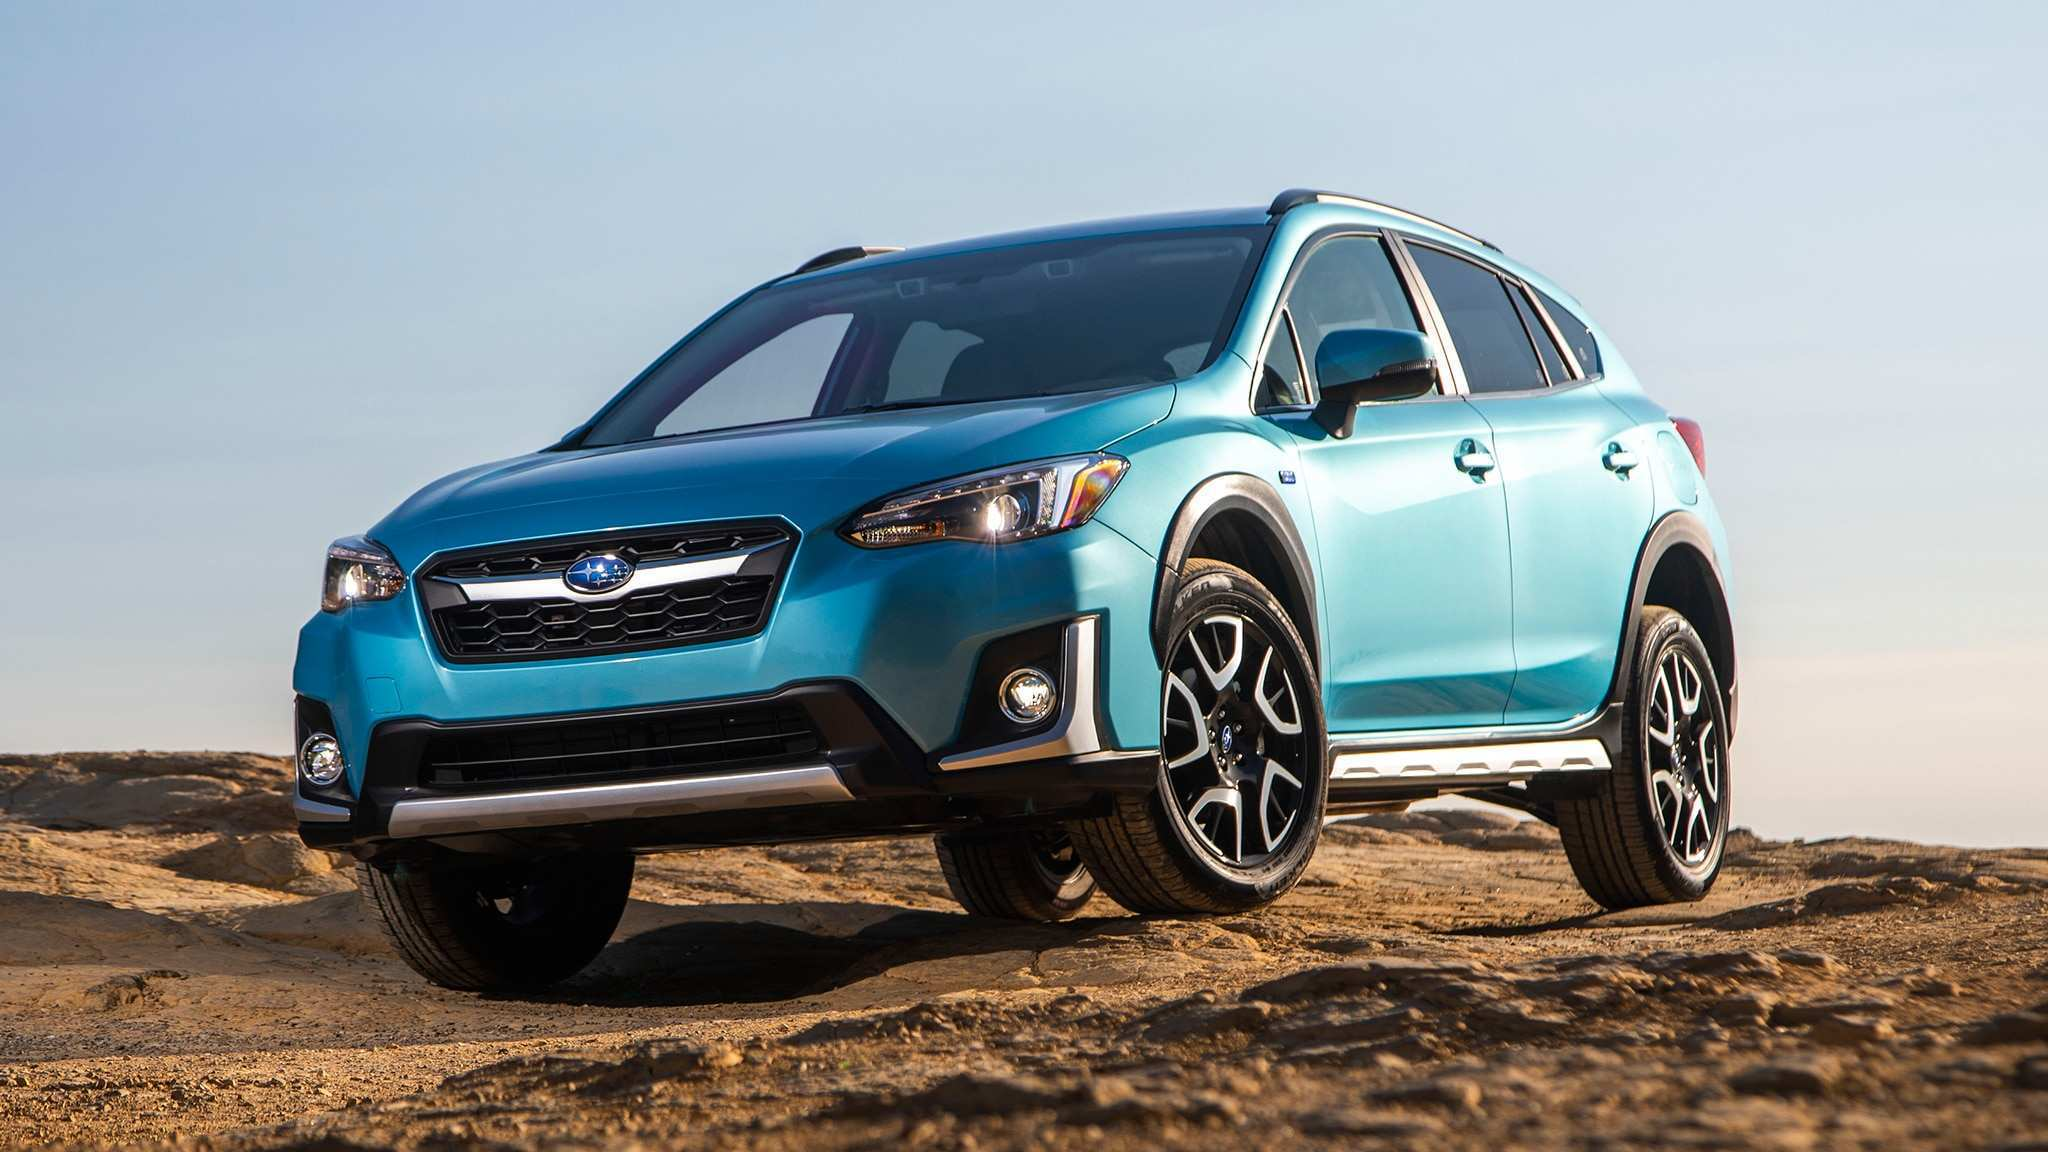 37 New 2020 Subaru Crosstrek Turbo Interior